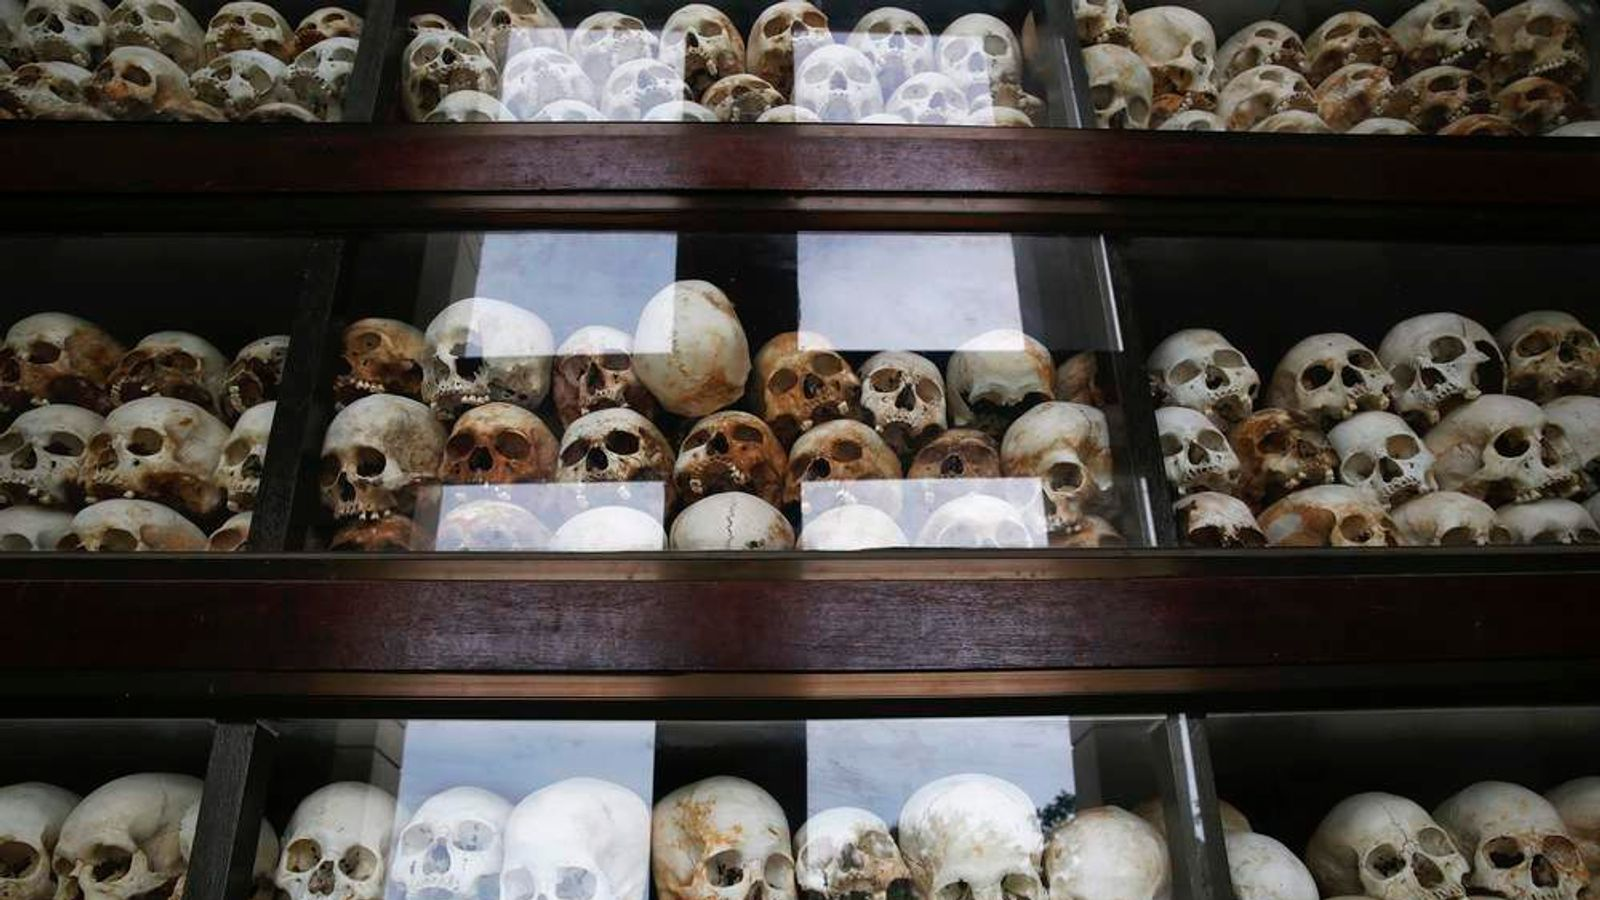 """Skulls are placed behind glass at a memorial stupa made with the bones of more than 8,000 victims of the Khmer Rouge regime at Choeung Ek, a """"Killing Fields"""" site located on the outskirts of Phnom Penh"""